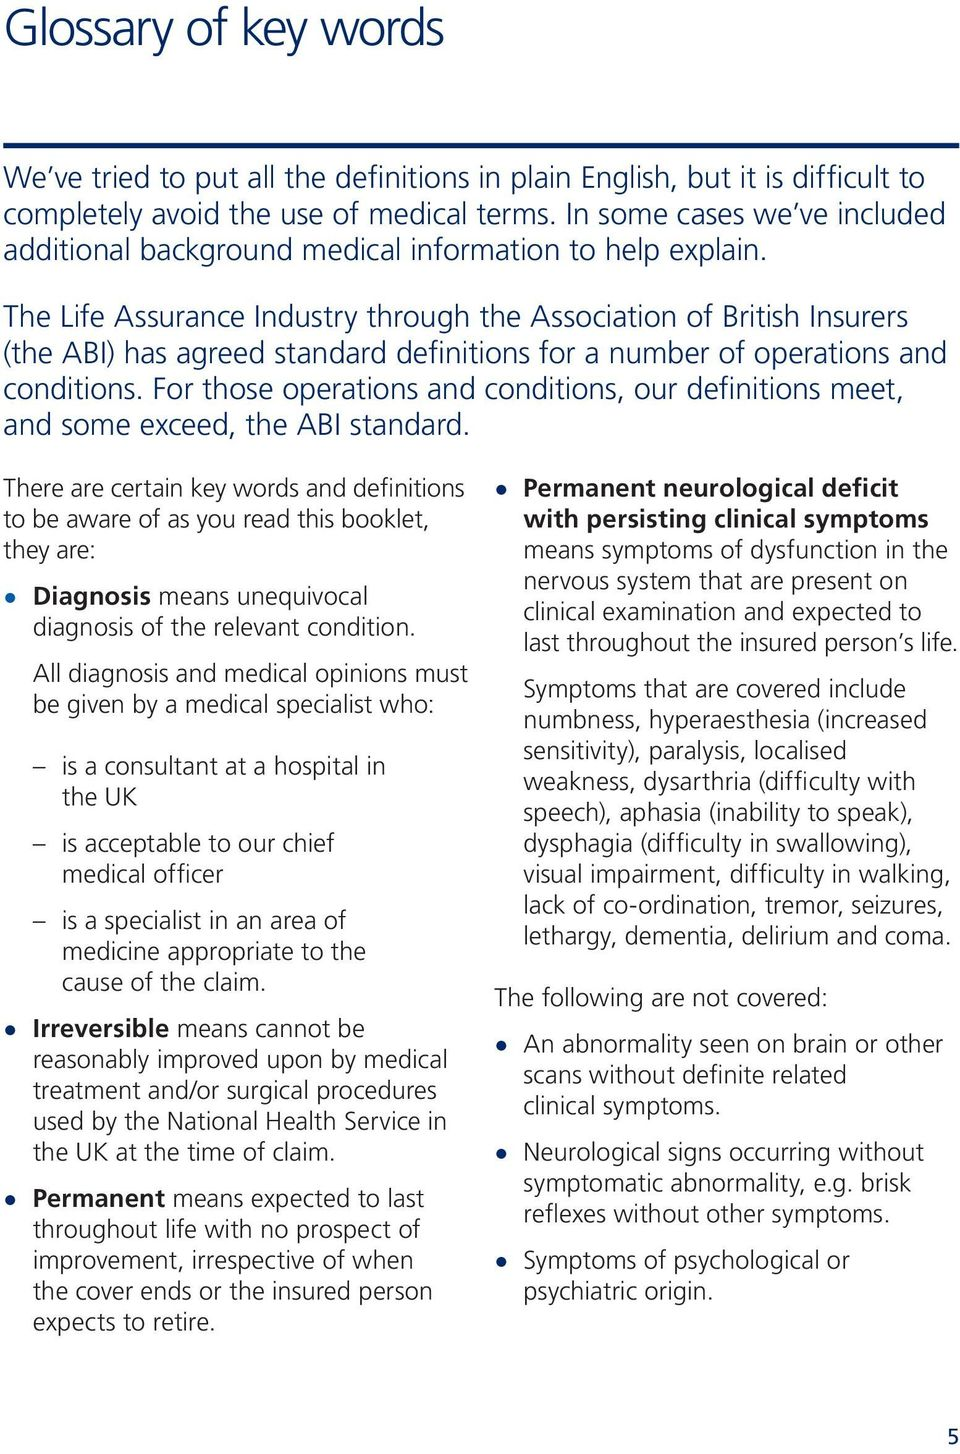 The Life Assurance Industry through the Association of British Insurers (the ABI) has agreed standard definitions for a number of operations and conditions.